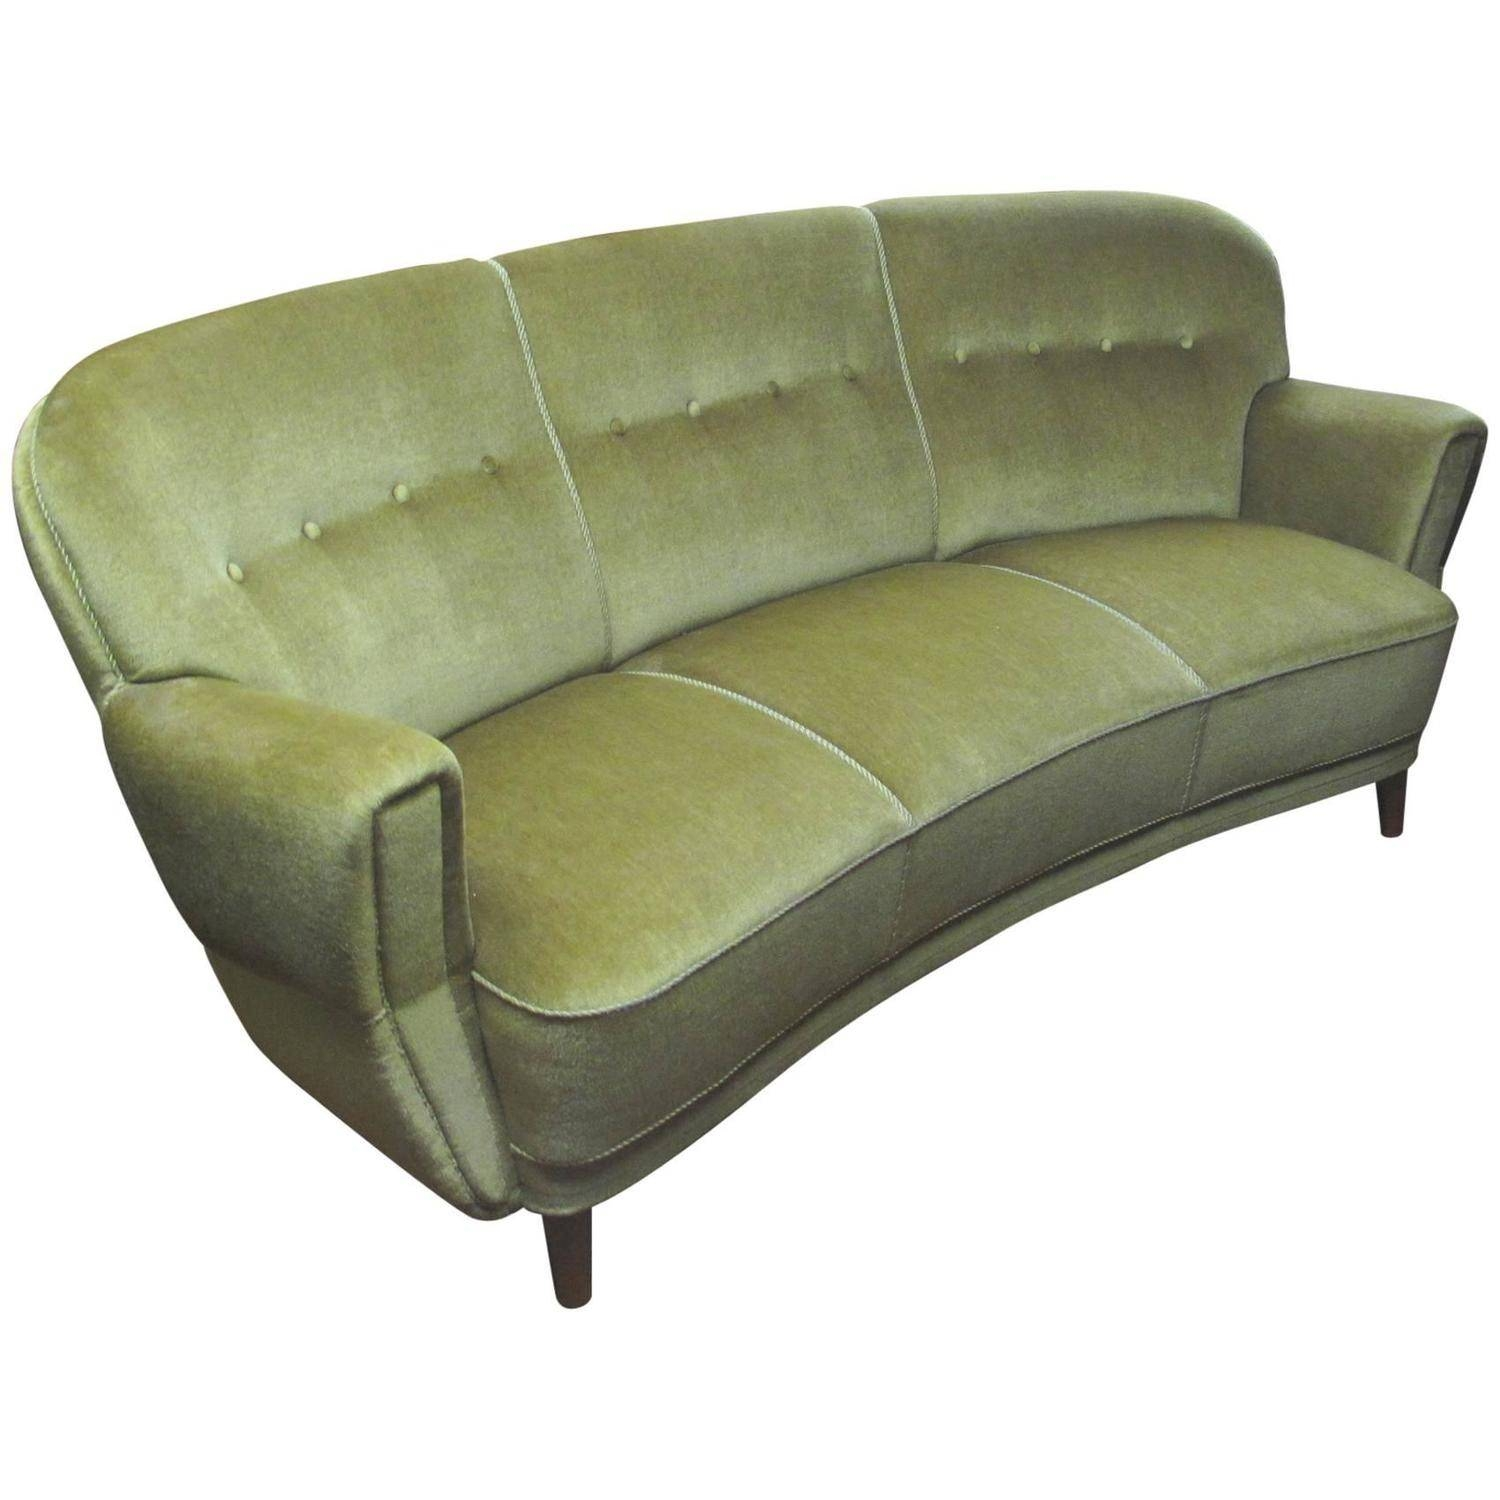 Danish 1930S-1940S Curved Mohair Upholstered Sofa At 1Stdibs intended for 1930S Couch (Image 15 of 30)